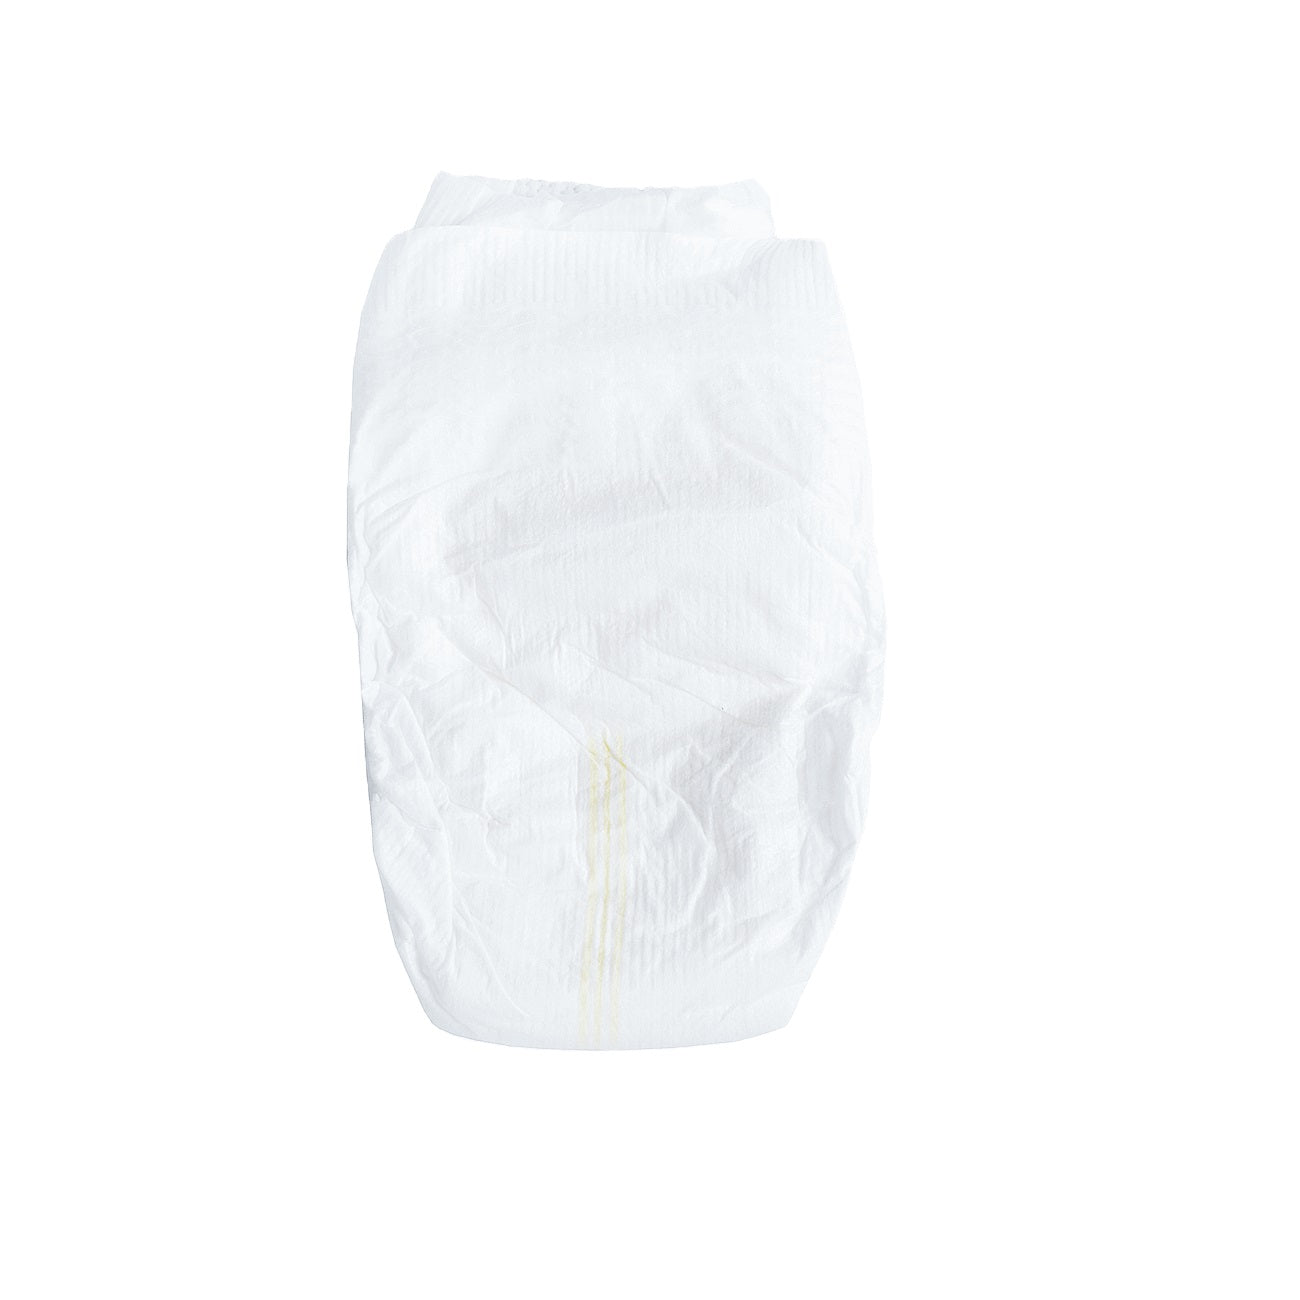 Nappy Club Premium Diapers New Born (NB), 3-5kg, 80 pcs